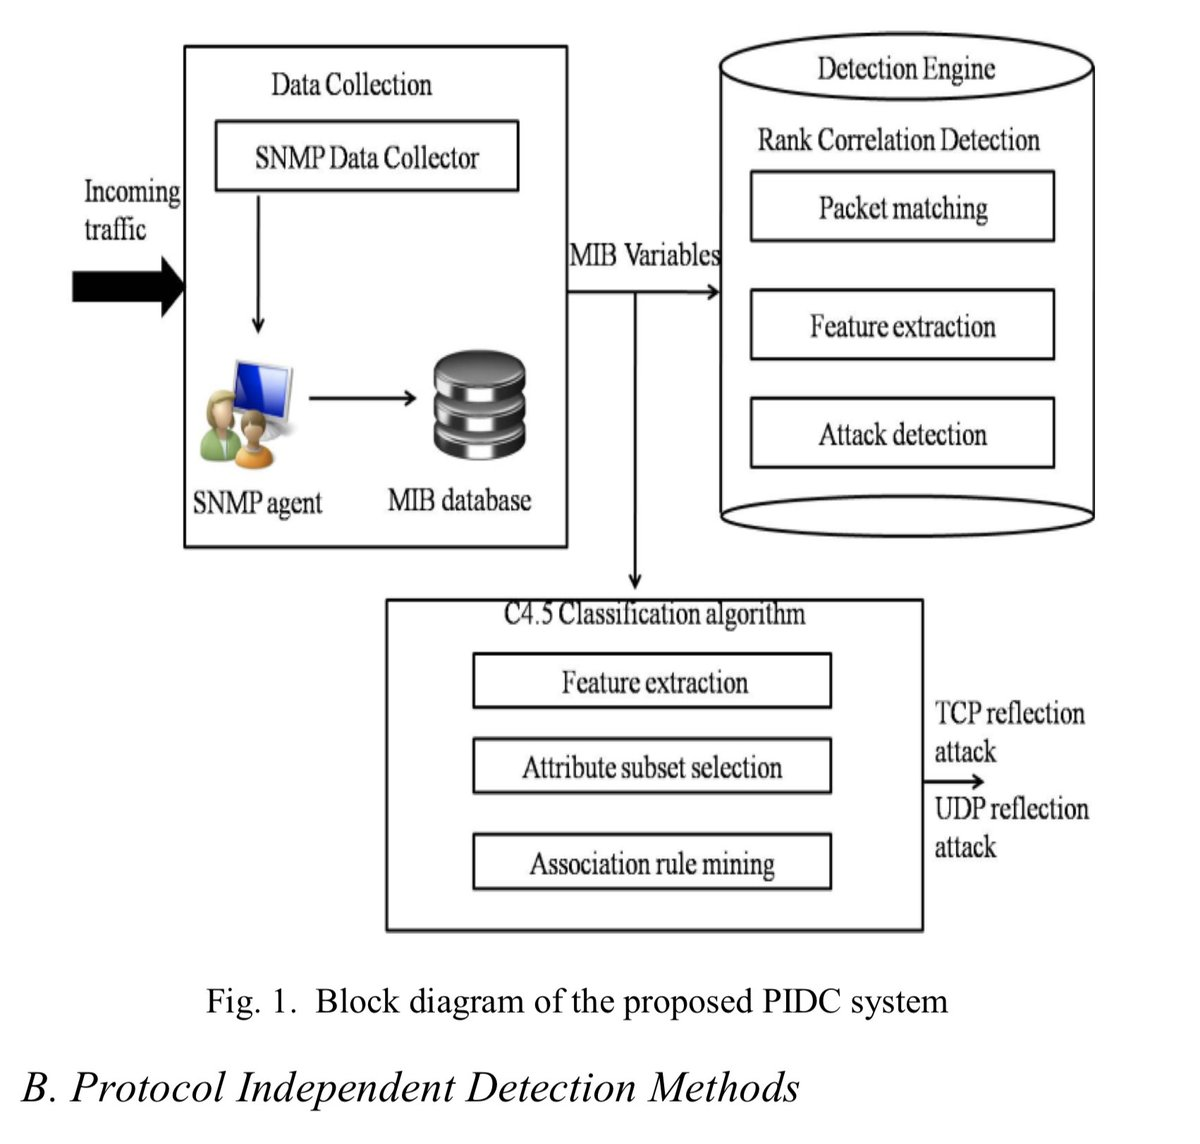 hight resolution of dr gp pulipaka on twitter classification of intrusion detection systems bigdata analytics machinelearning datascience ai cybersecurity iot iiot